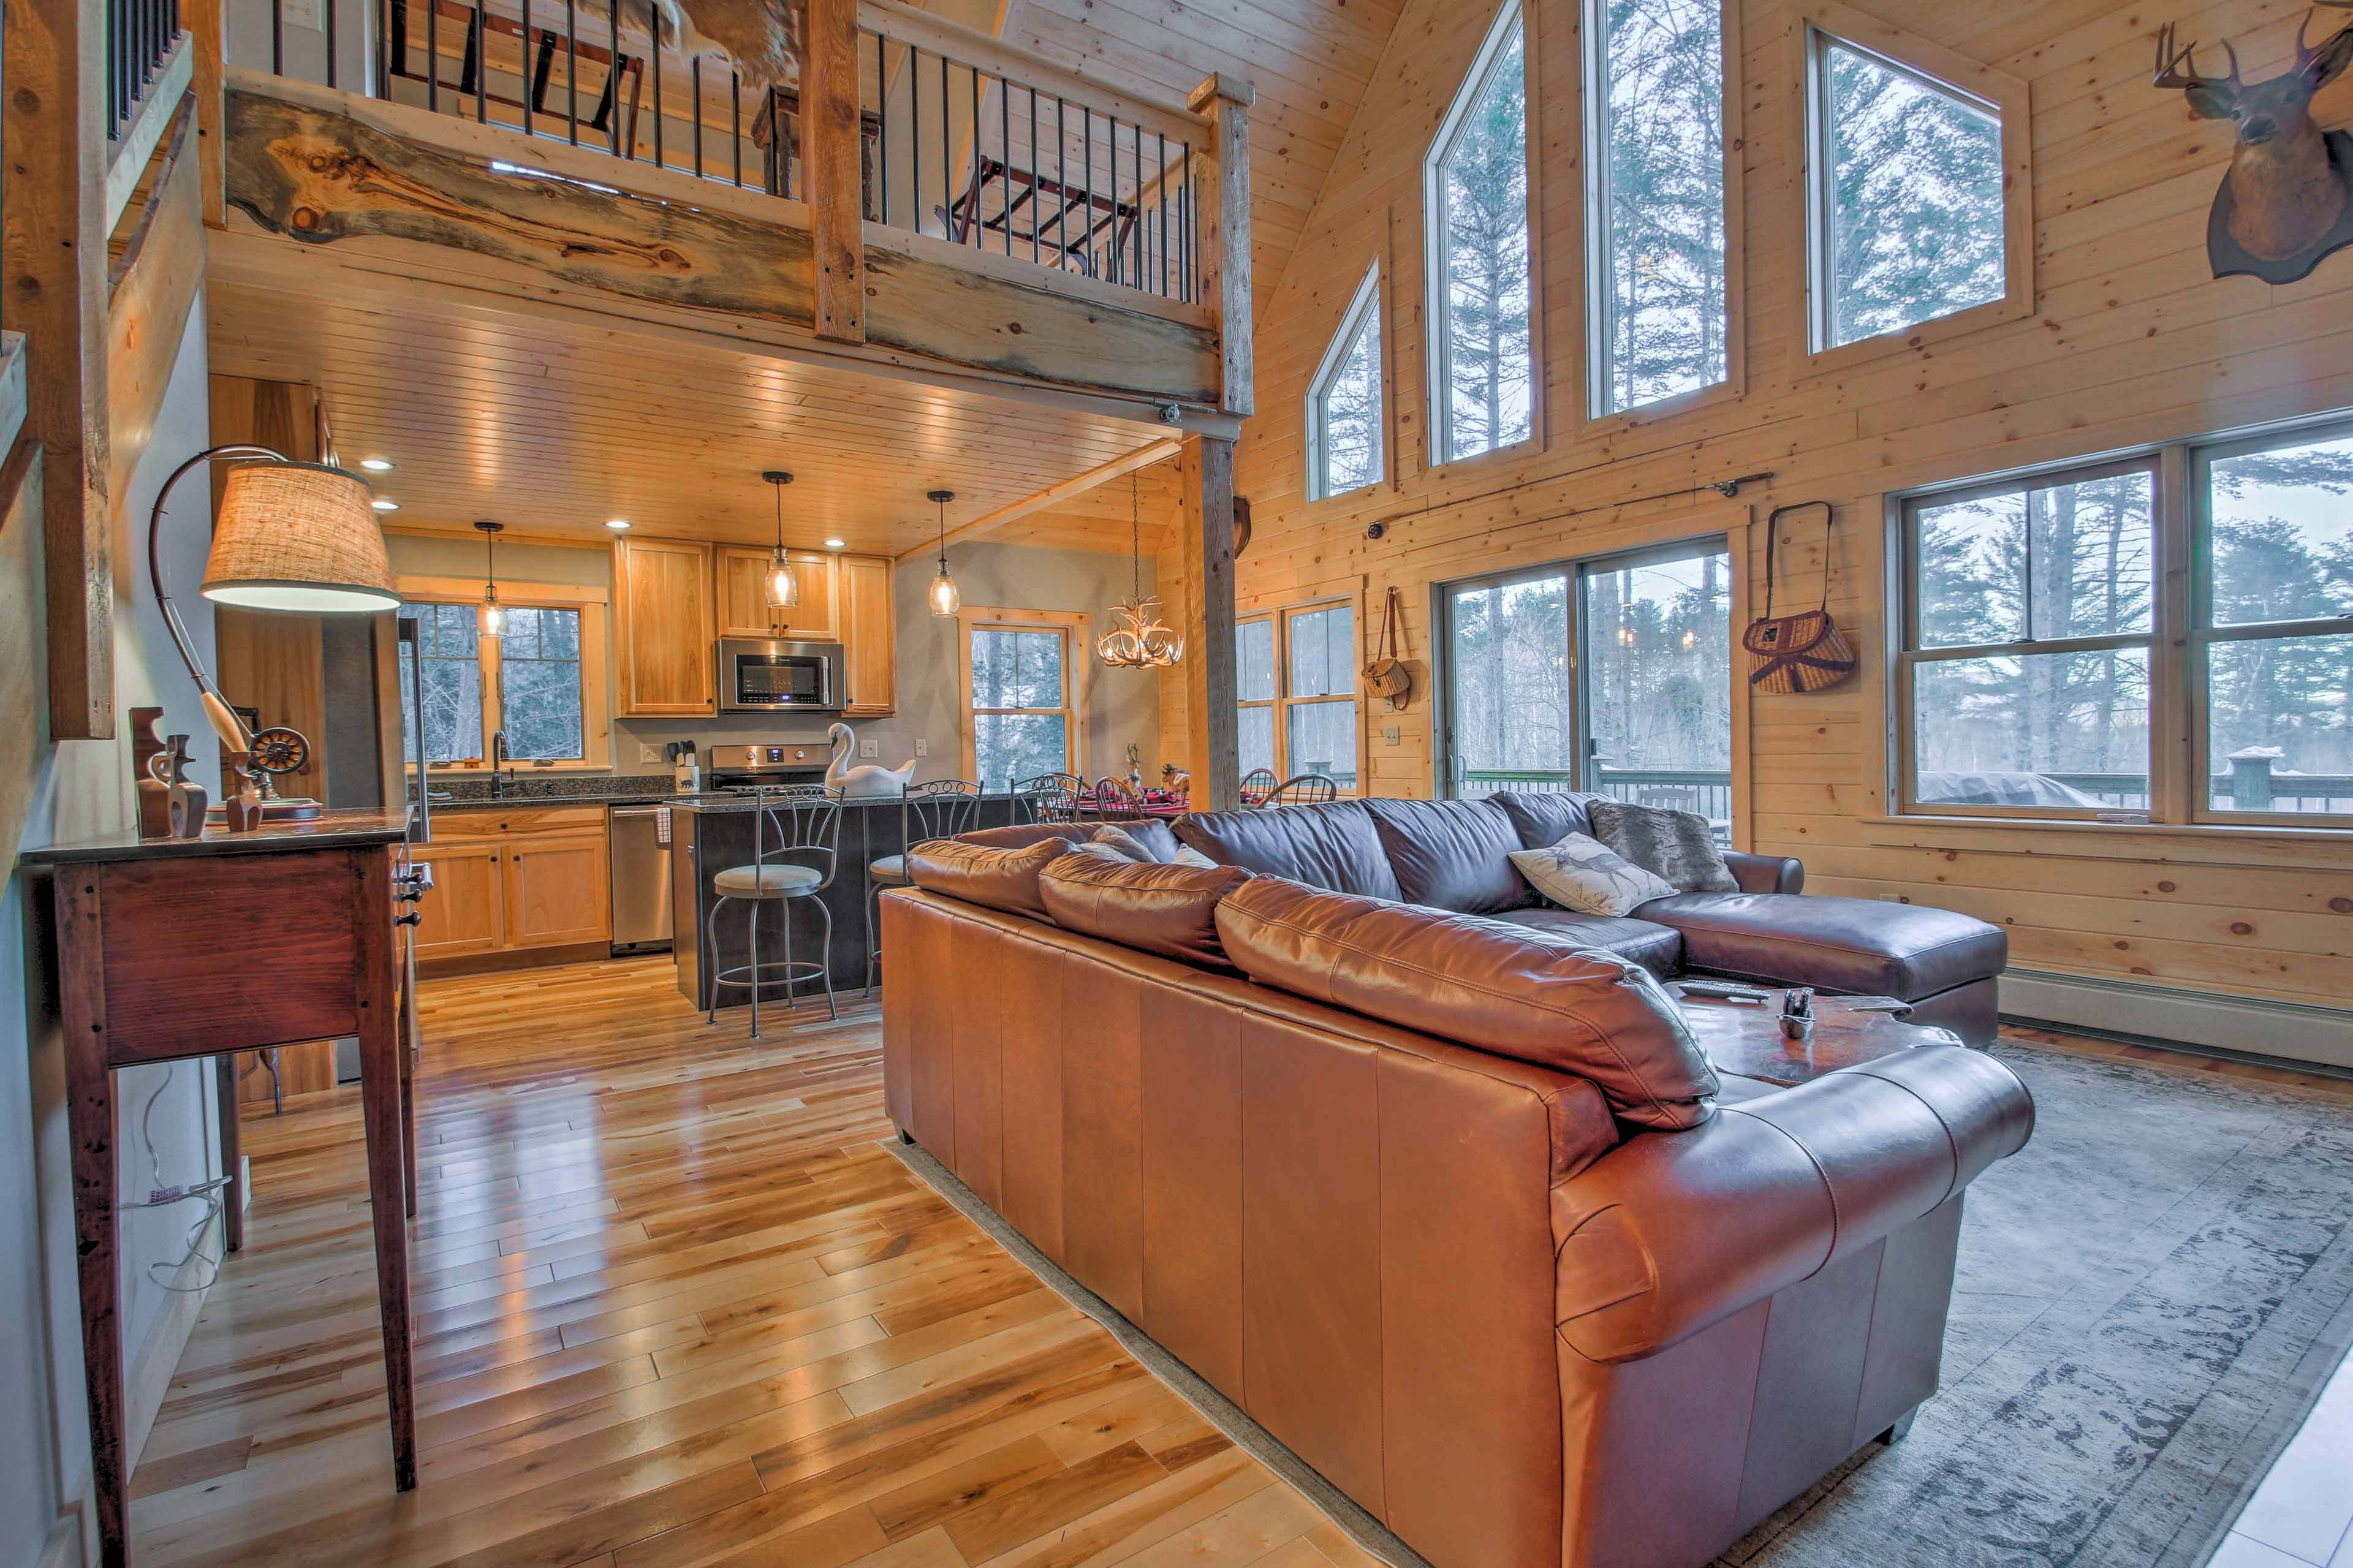 The tall vaulted ceilings and warm hardwood floors enhance the cozy atmosphere.